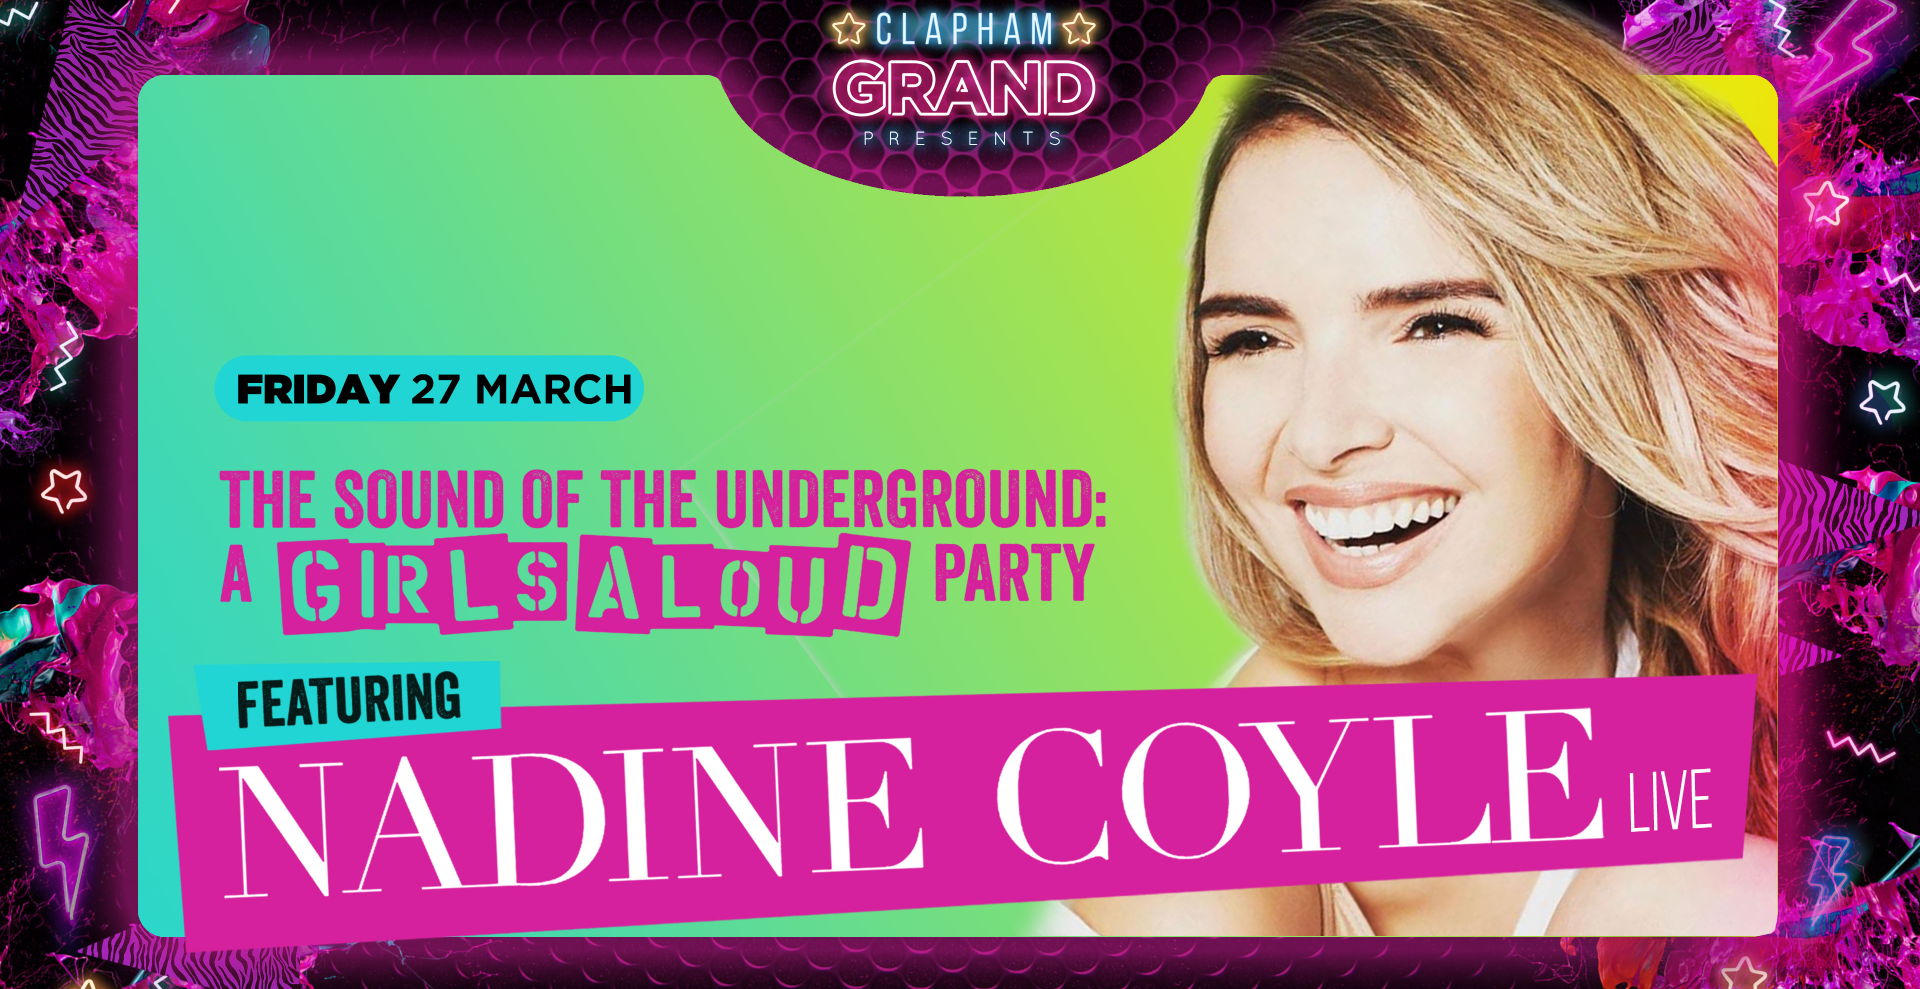 Nadine Coyle LIVE! Sound of the Underground Party